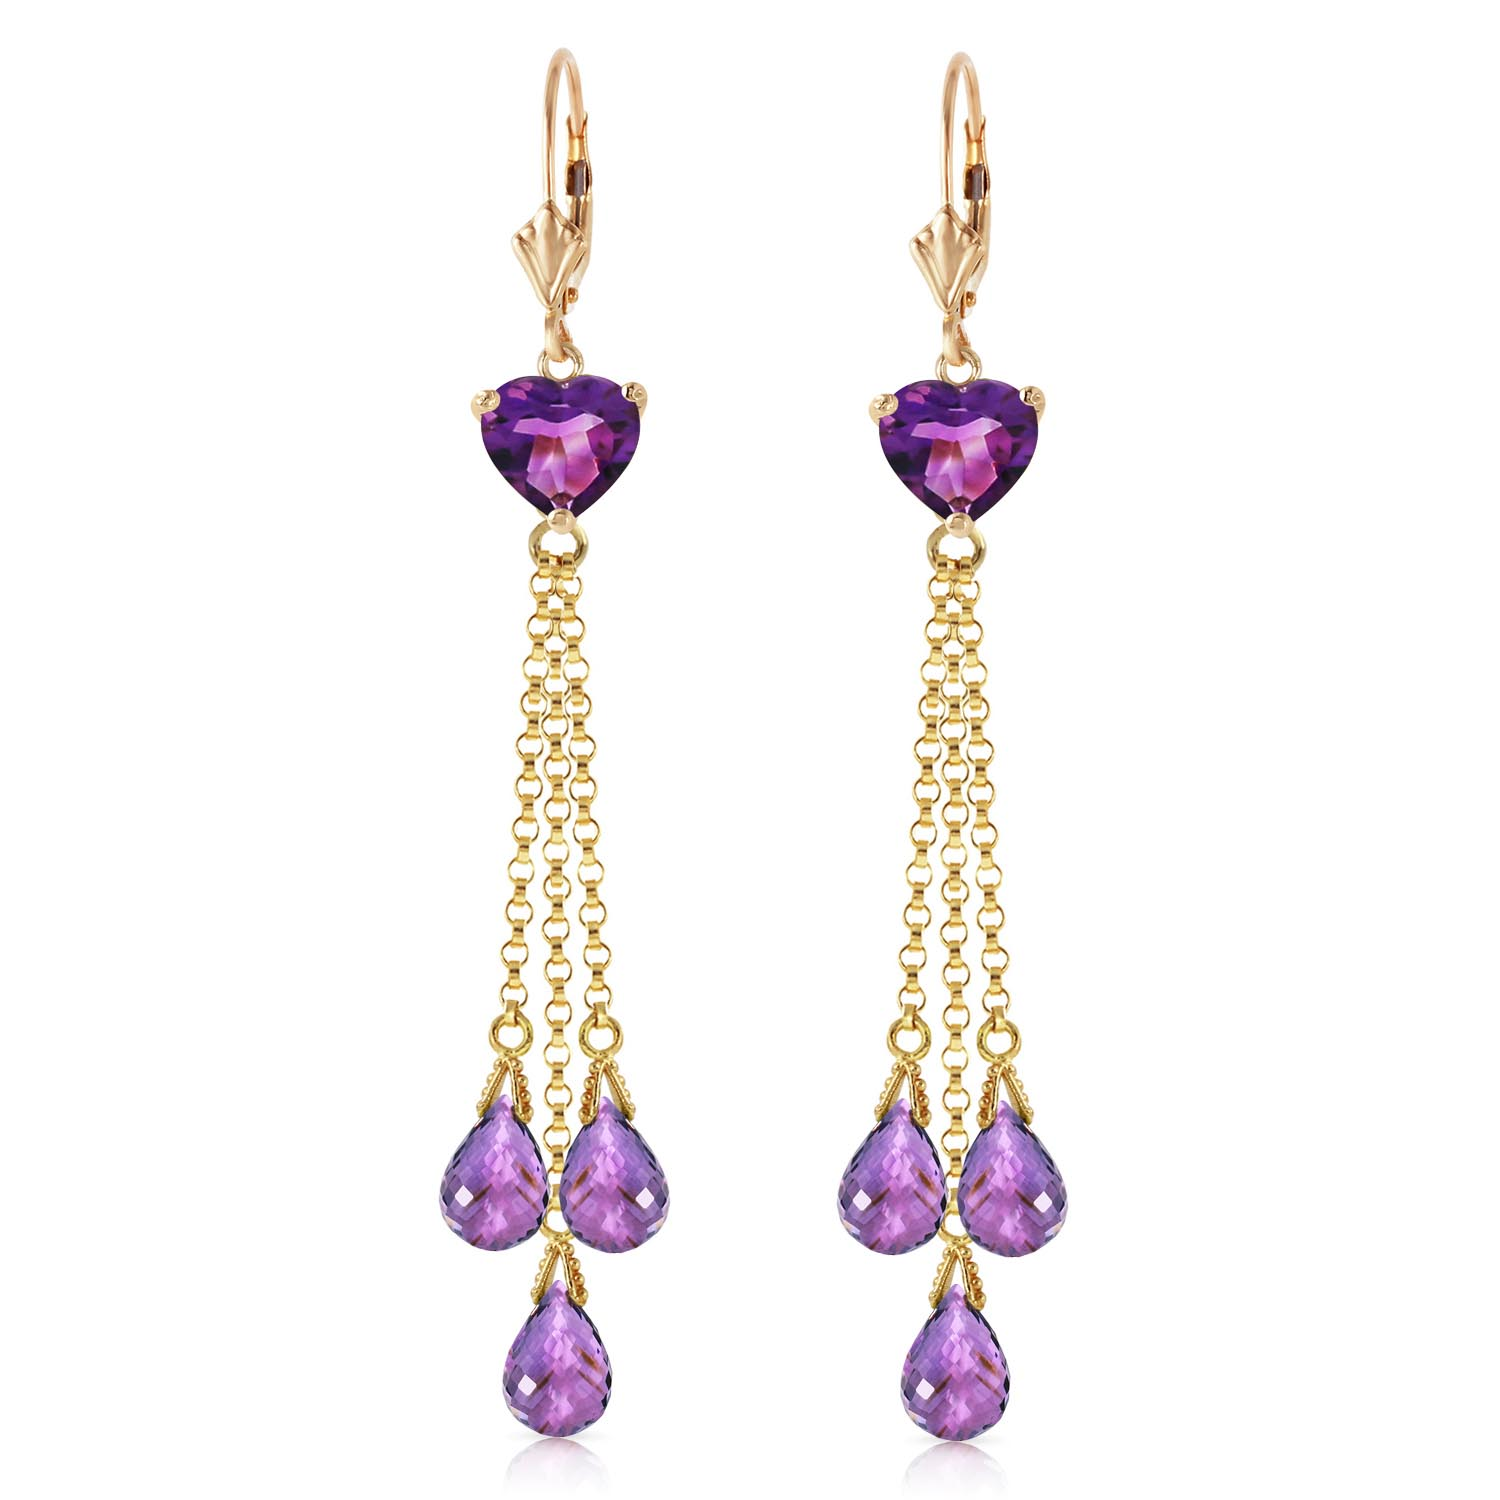 Amethyst Vestige Heart Drop Earrings 9.5ctw in 9ct Gold